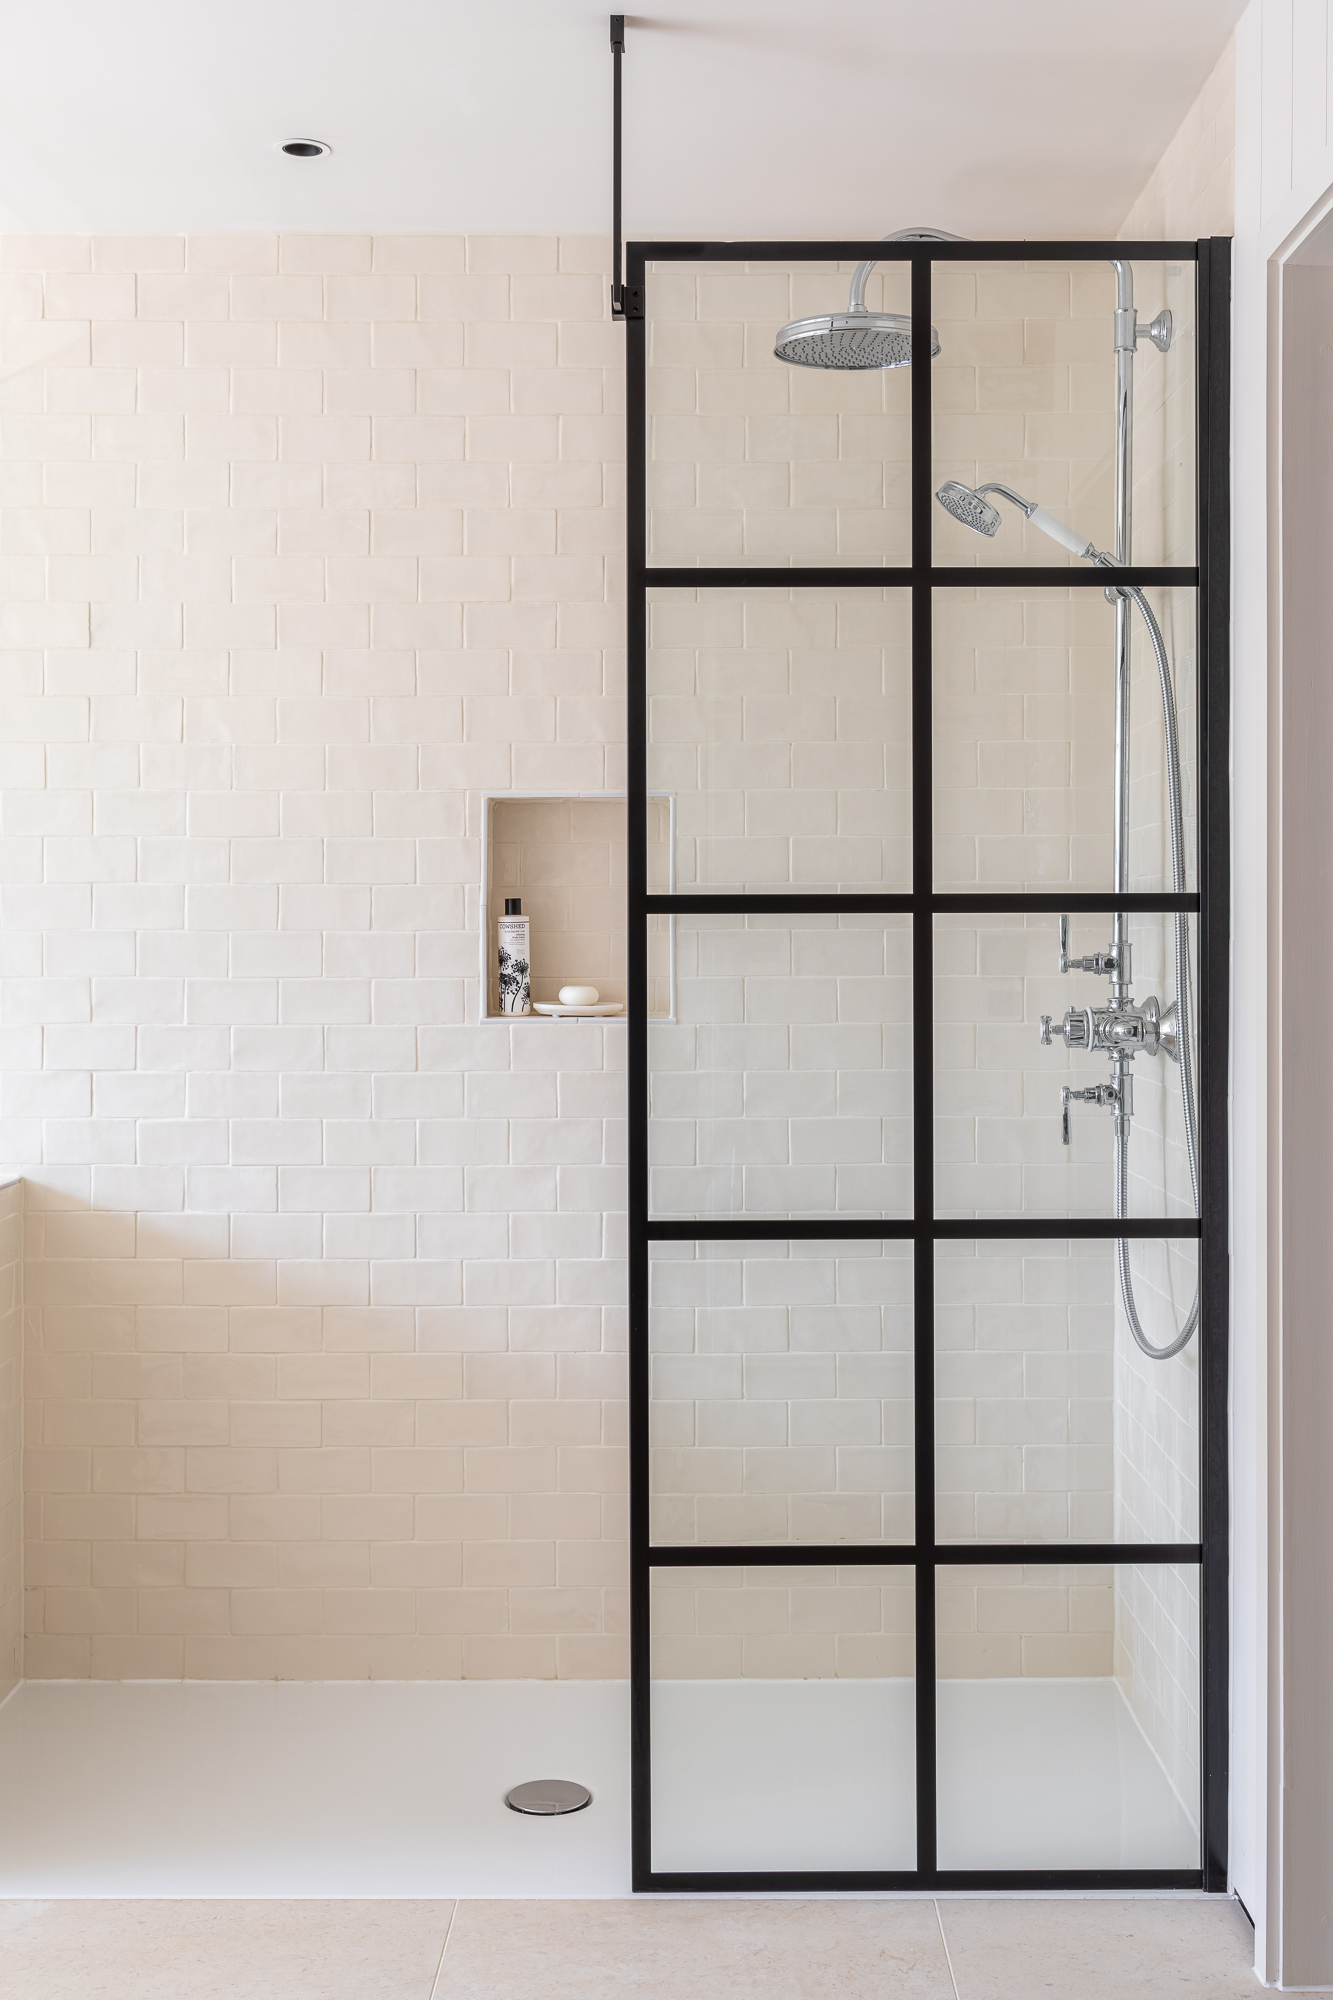 jonathan bond, interior photographer, walk-in shower marnhull